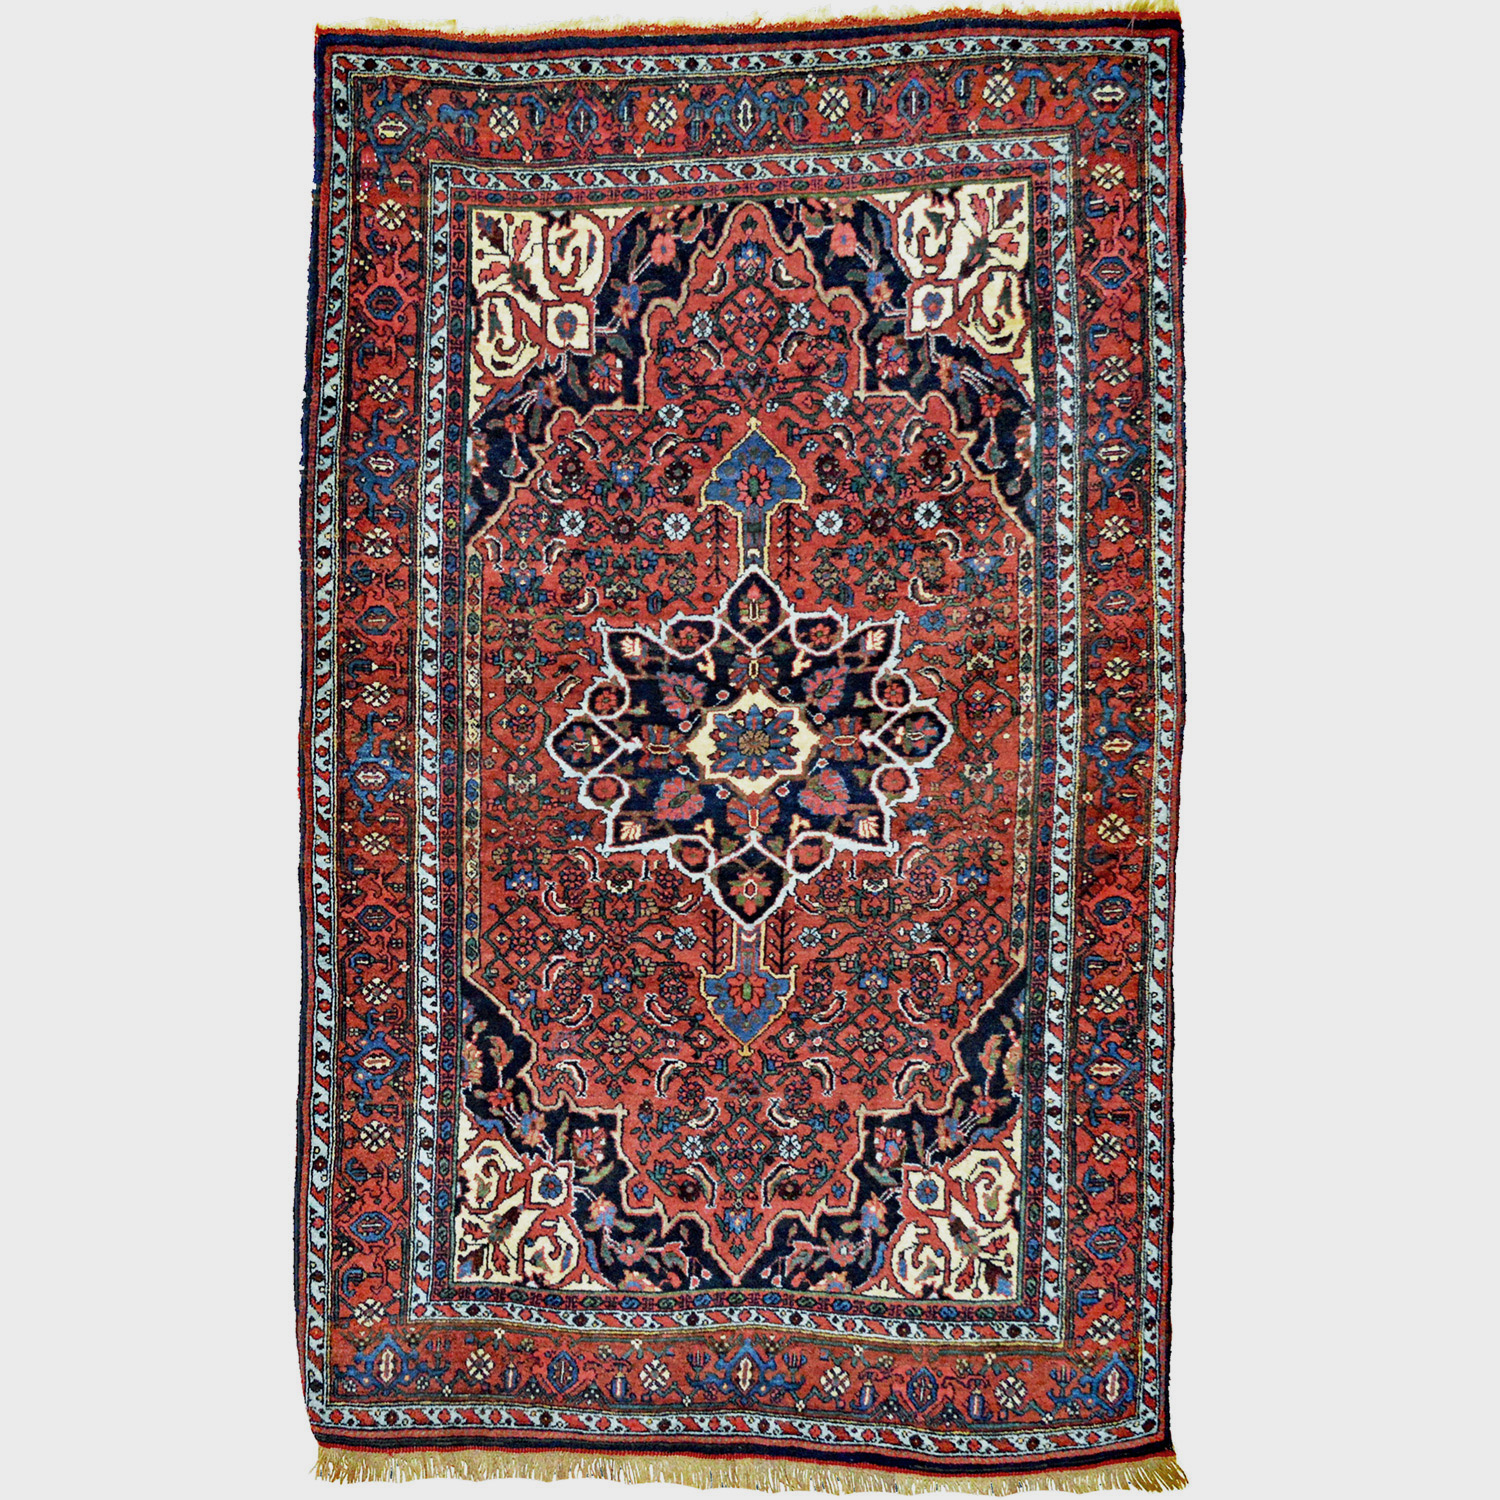 4.1 x 6.8 Antique Bidjar rug with Herati design and central medallion